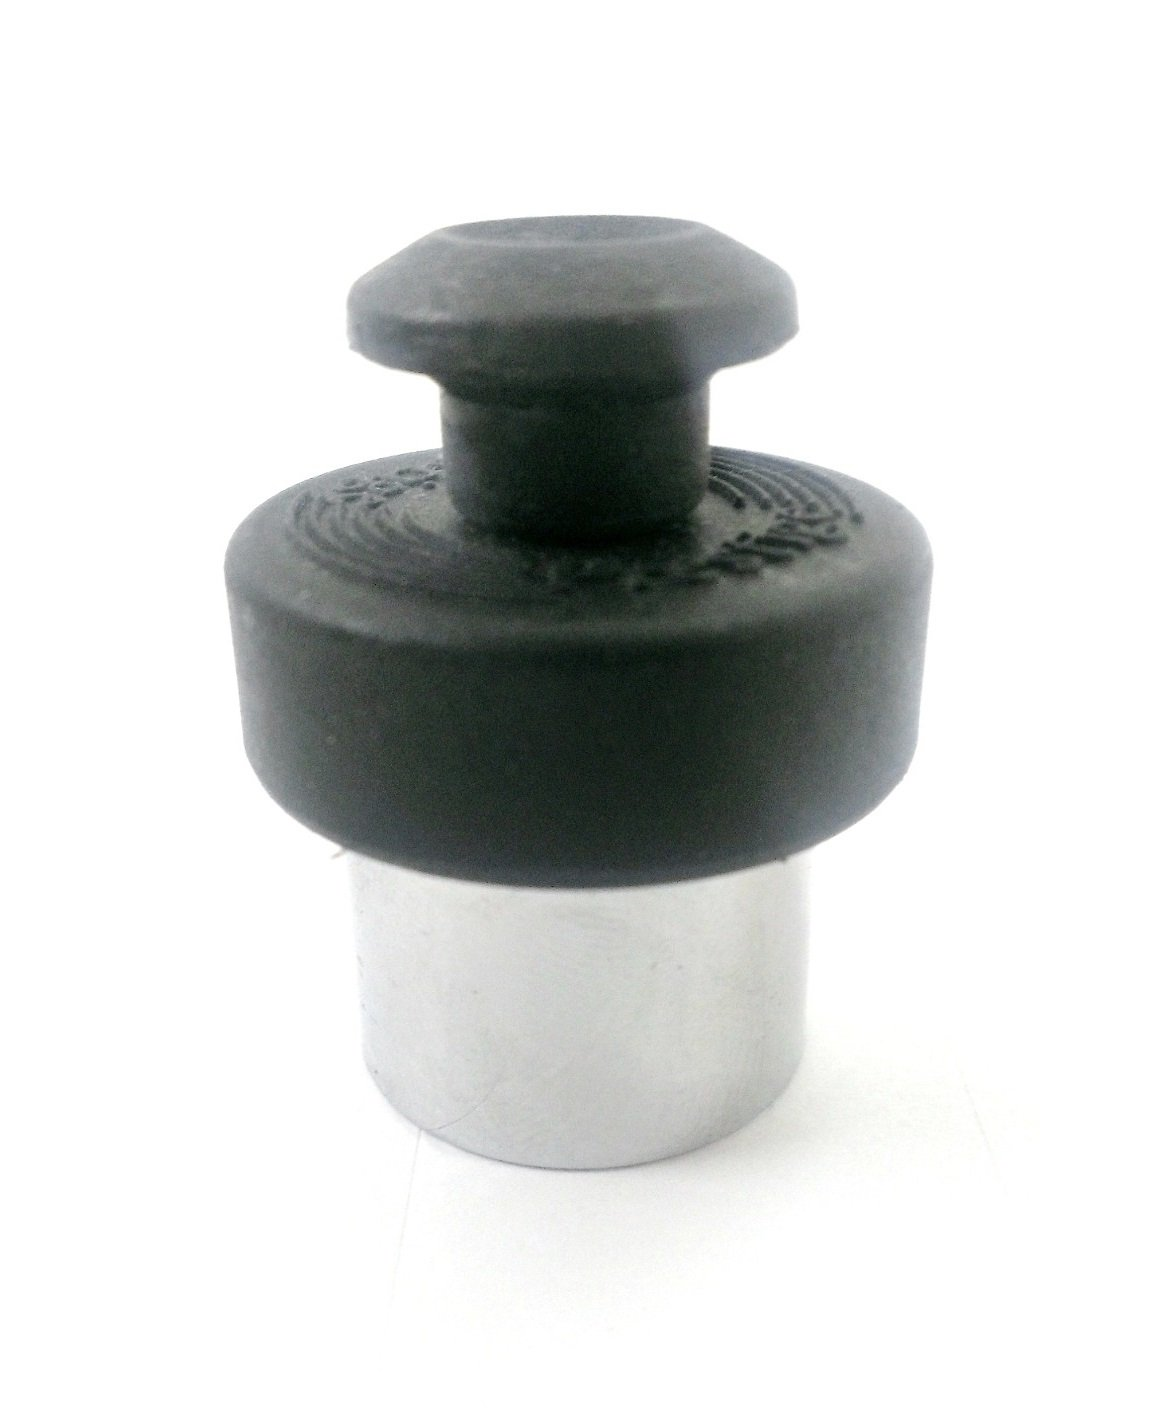 Prestige Pressure Regulator Weight Whistle for Prestige Pressure Cookers